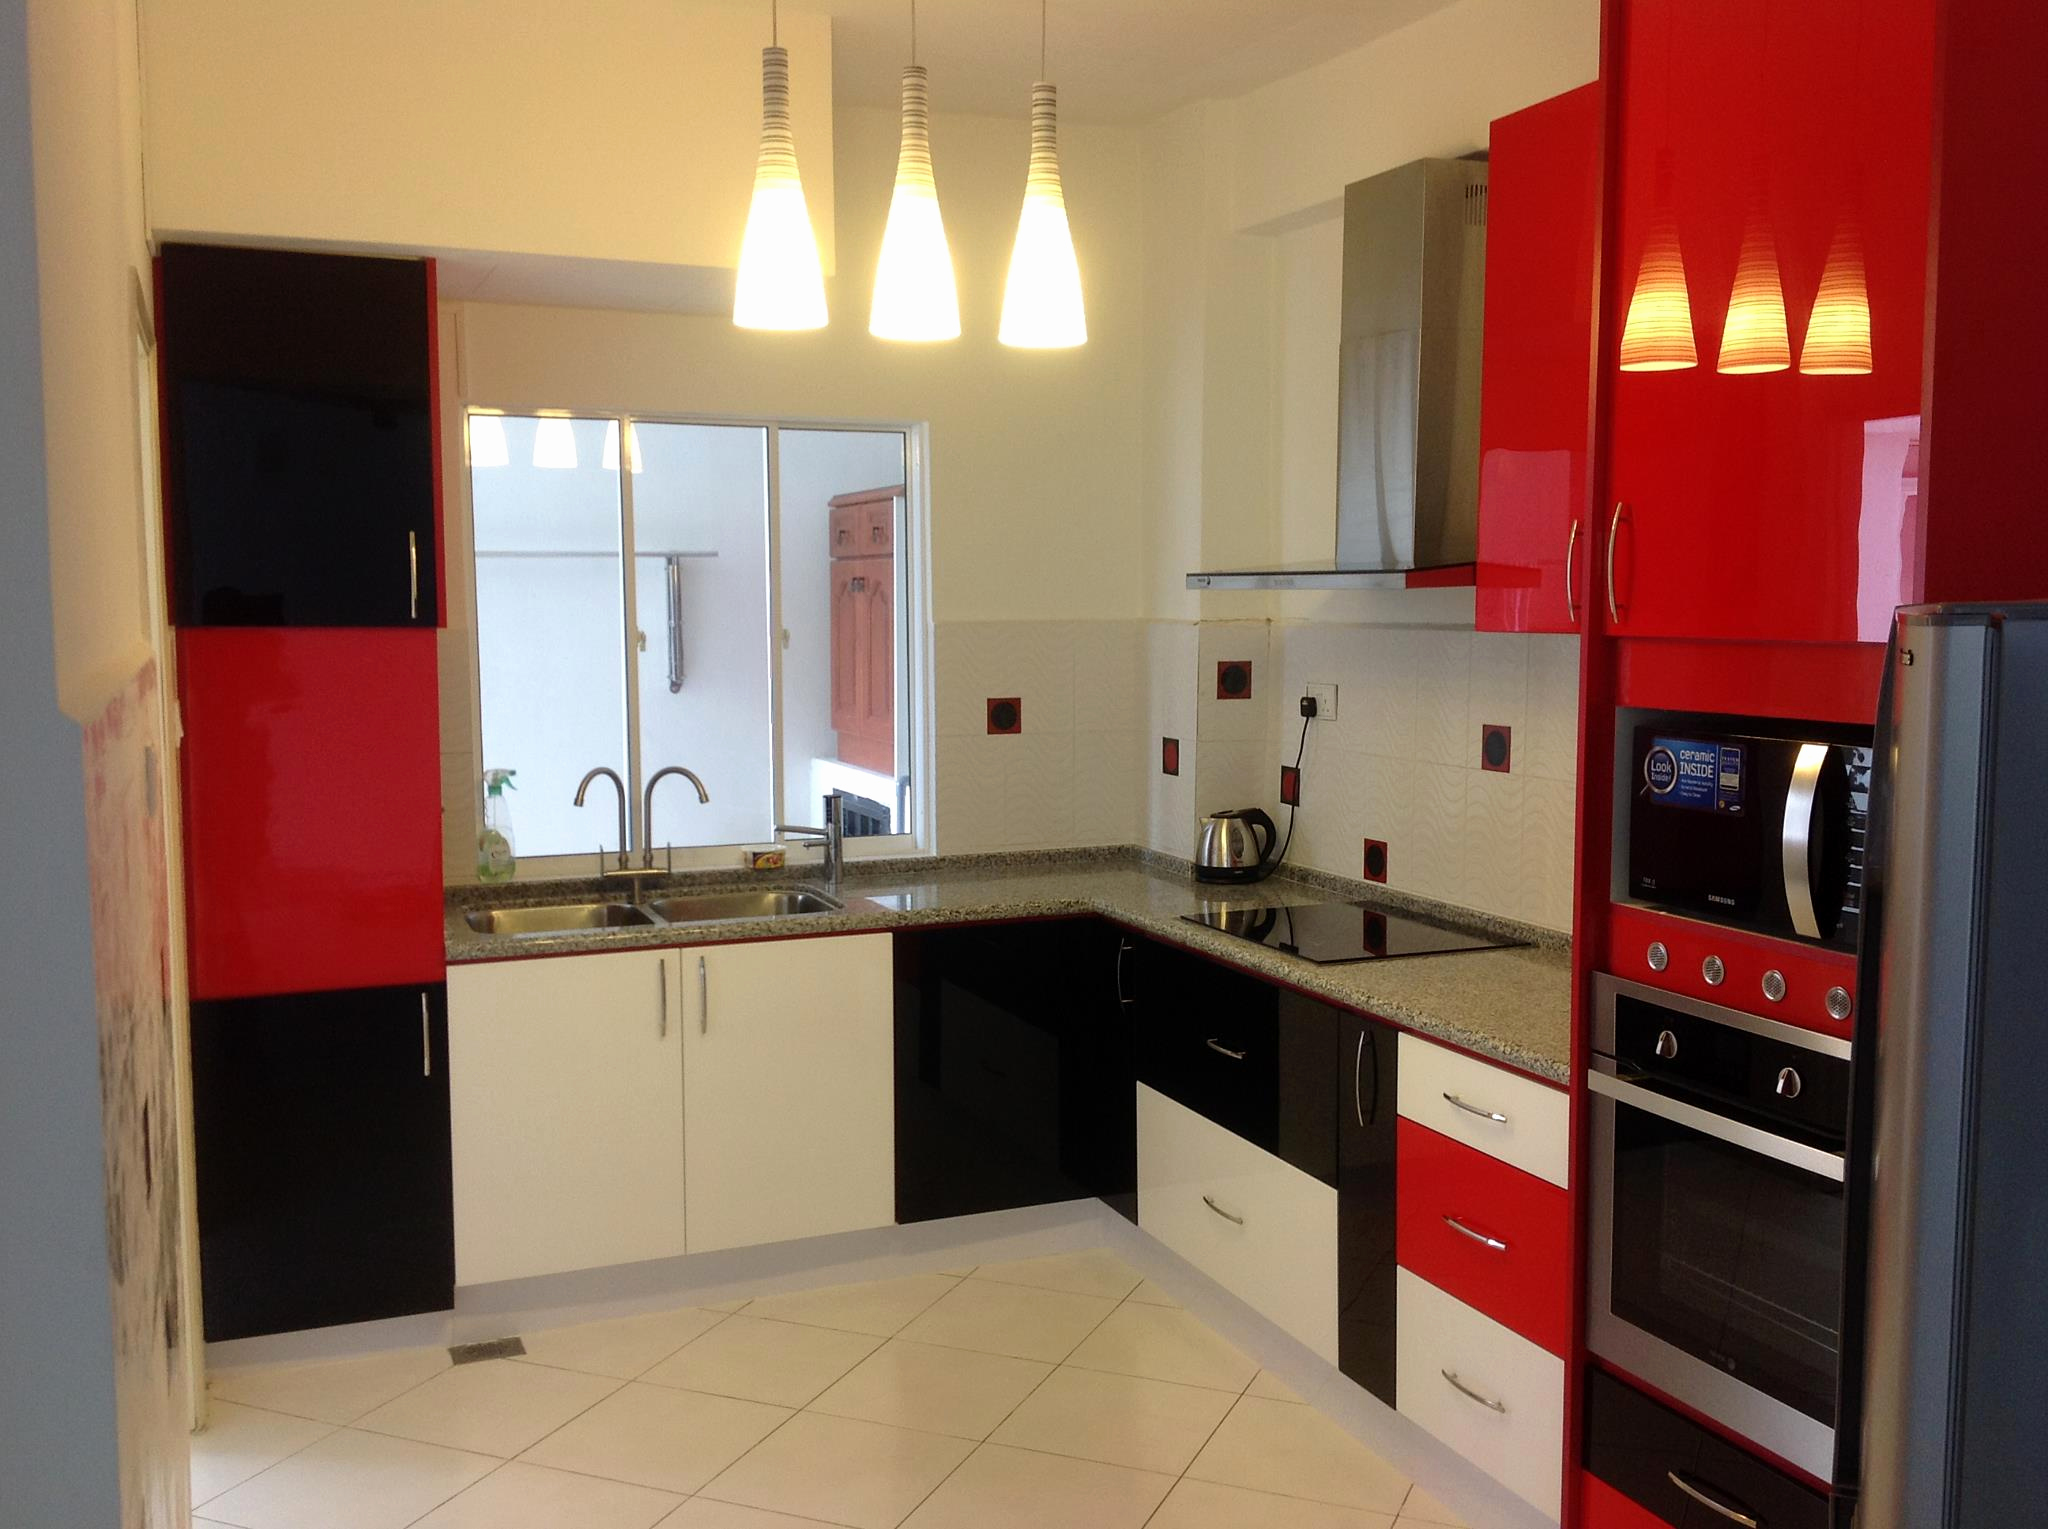 Awesome Red And White Kitchen S Of Wall Ideas In Black Acnn Decor